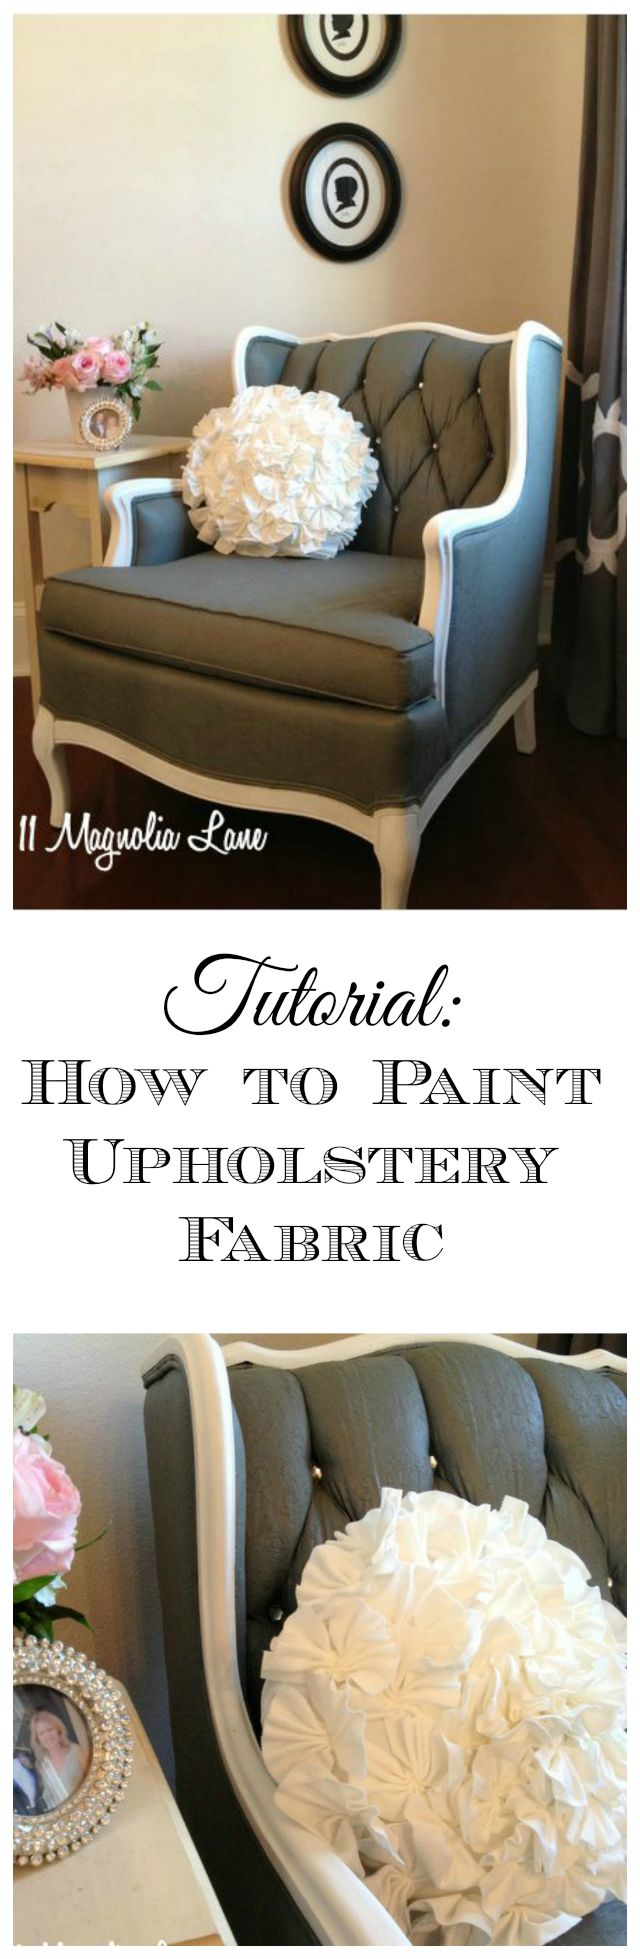 Tutorial: How to Paint Upholstery Fabric and Completely Transform a ...